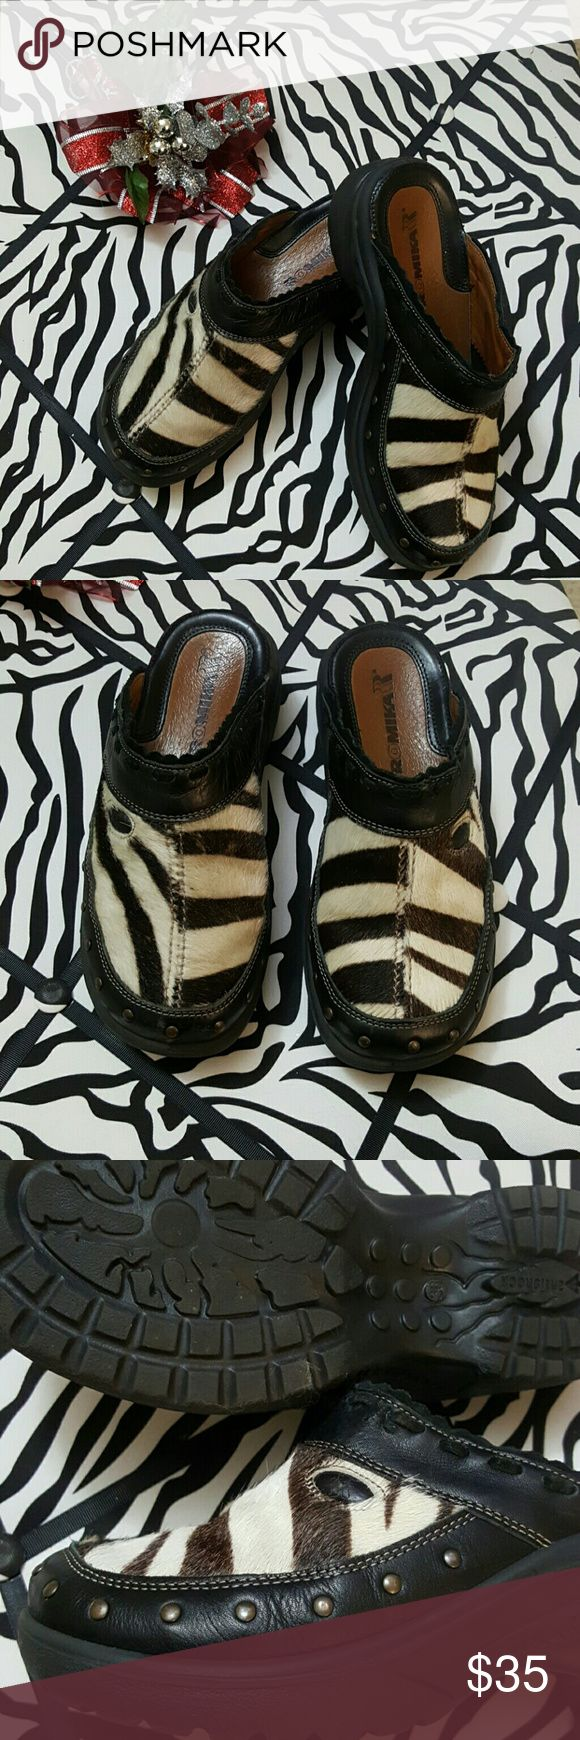 ROMIKA ZEBRA PRINT CALF HAIR MULES SIZE 6 OMG YOU HAVE TO HAVE THESE!! They are SOO MUCH FUN!! They are in great new like condition except for a little blemish in the 3rd pic in the leather along the stitching. These fit more like a 6.5.. I wear a 6 and I would have to wear thick socks or they were too big and even then.. these wild beasts just wouldn't tame to my feet! The metal brass studded detail around the toe bed makes them even more edginess. They were made to be worn and not caged up…